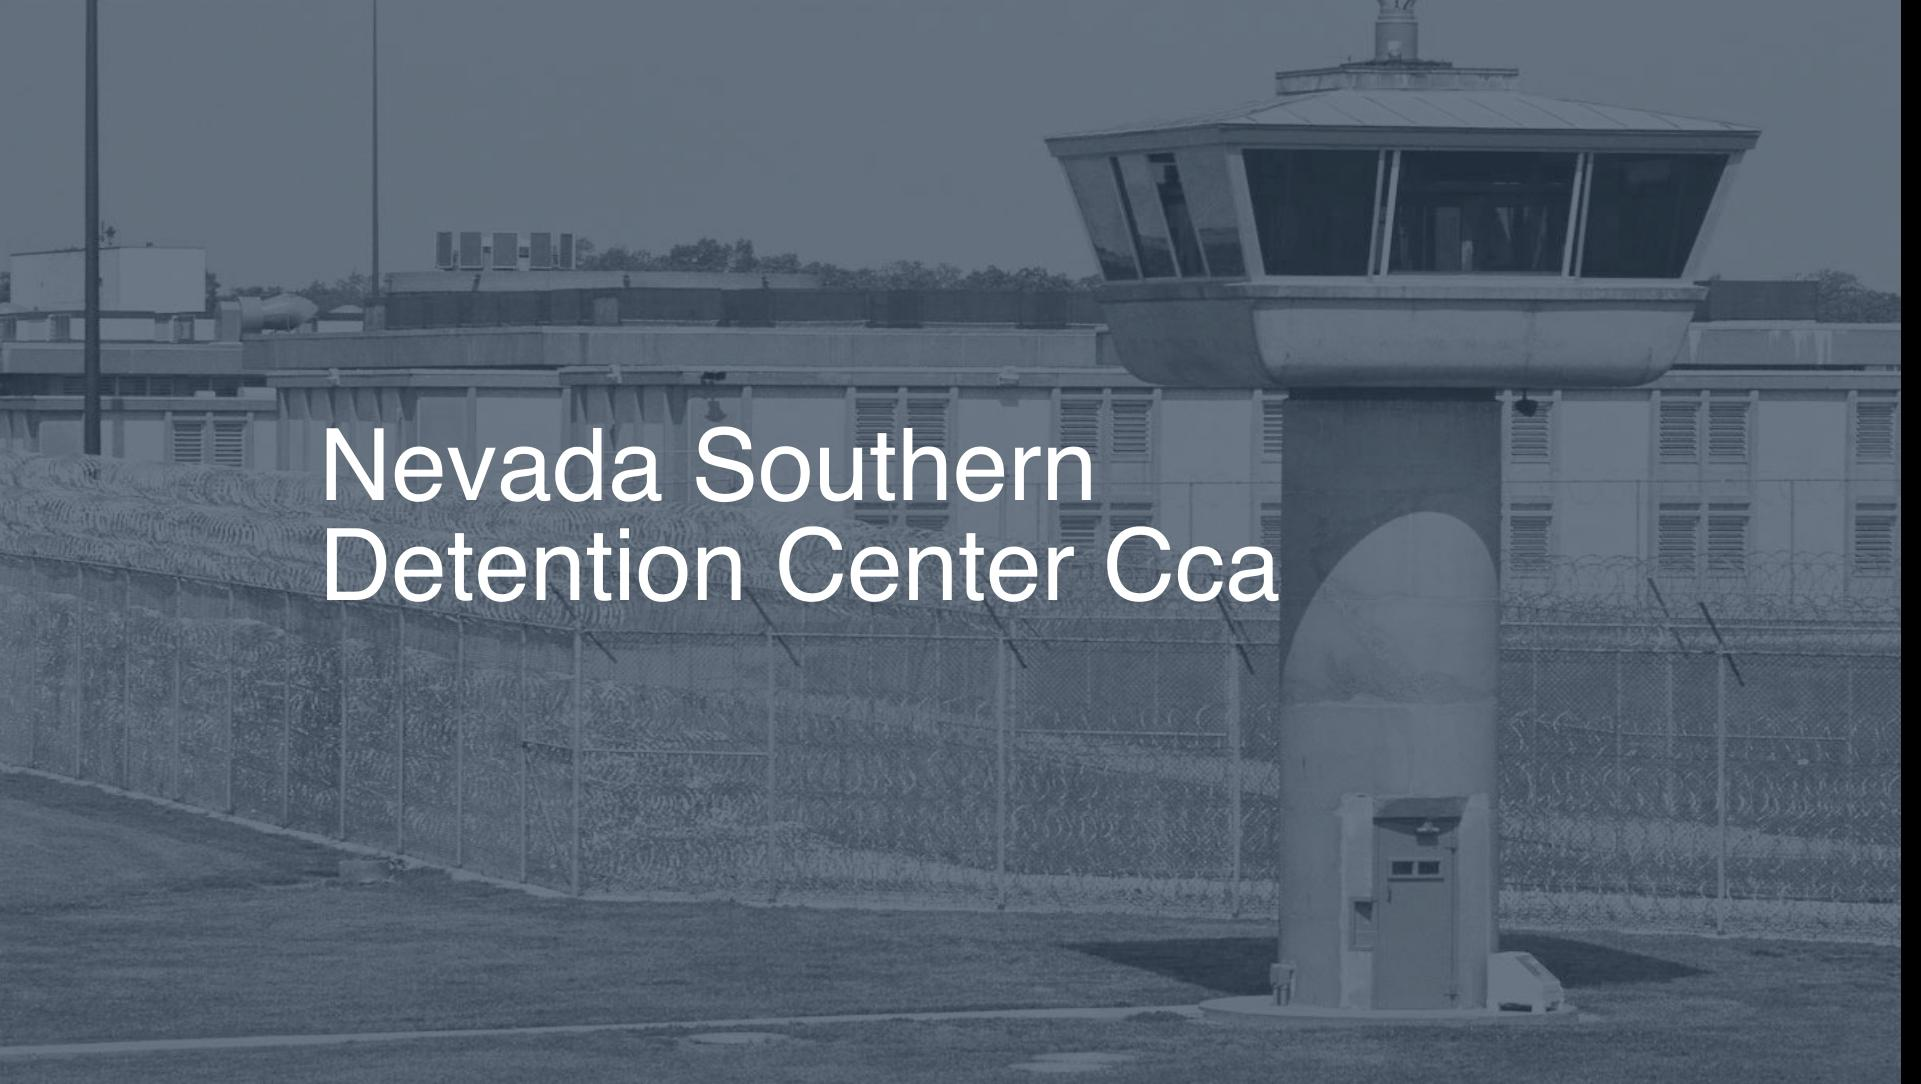 Nevada Southern Detention Center - CCA Inmate Search, Lookup